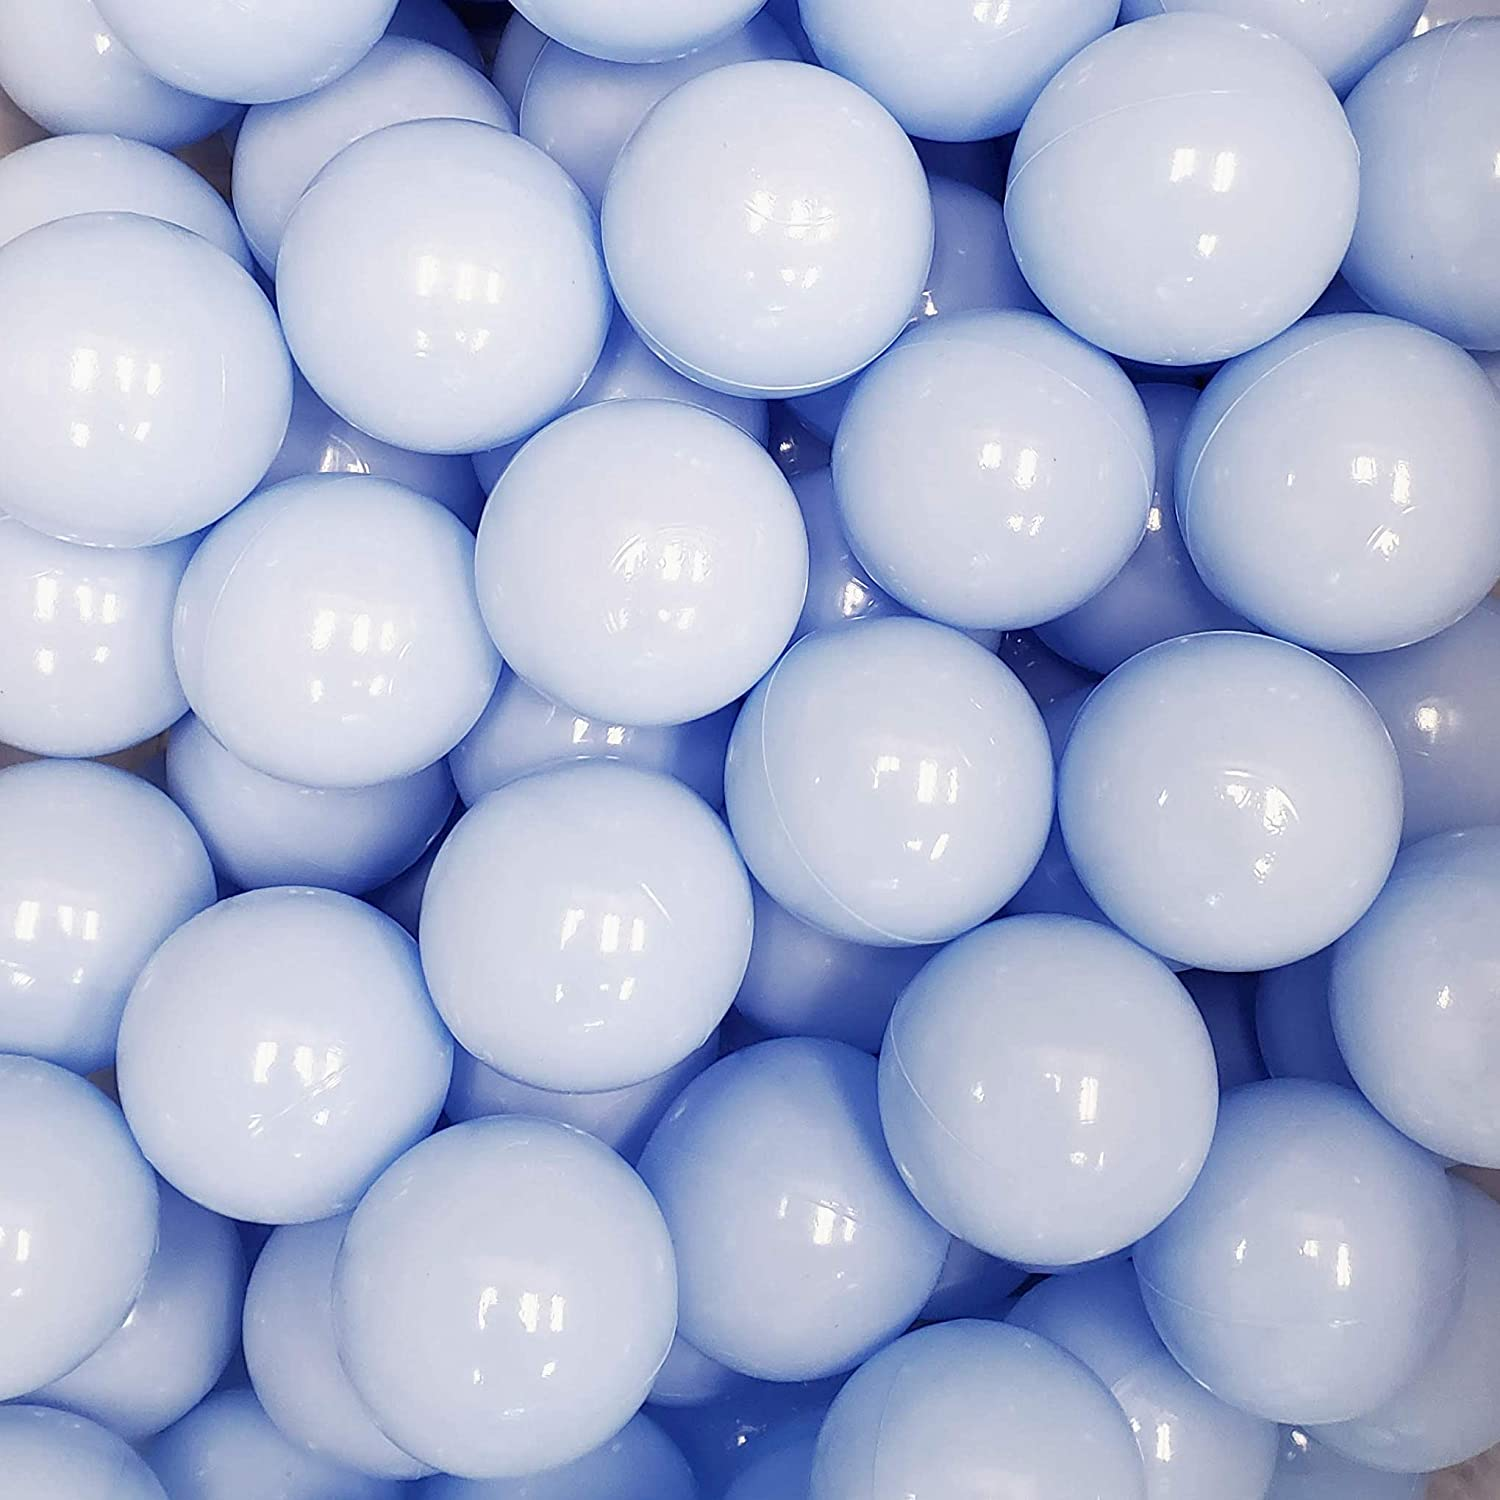 Blue, 200 200 Piece Single Color Set Perfect for Ball Pits Bliss Brands Baby Toys Soft Plastic Play Balls Baby Playpens Kids Parties